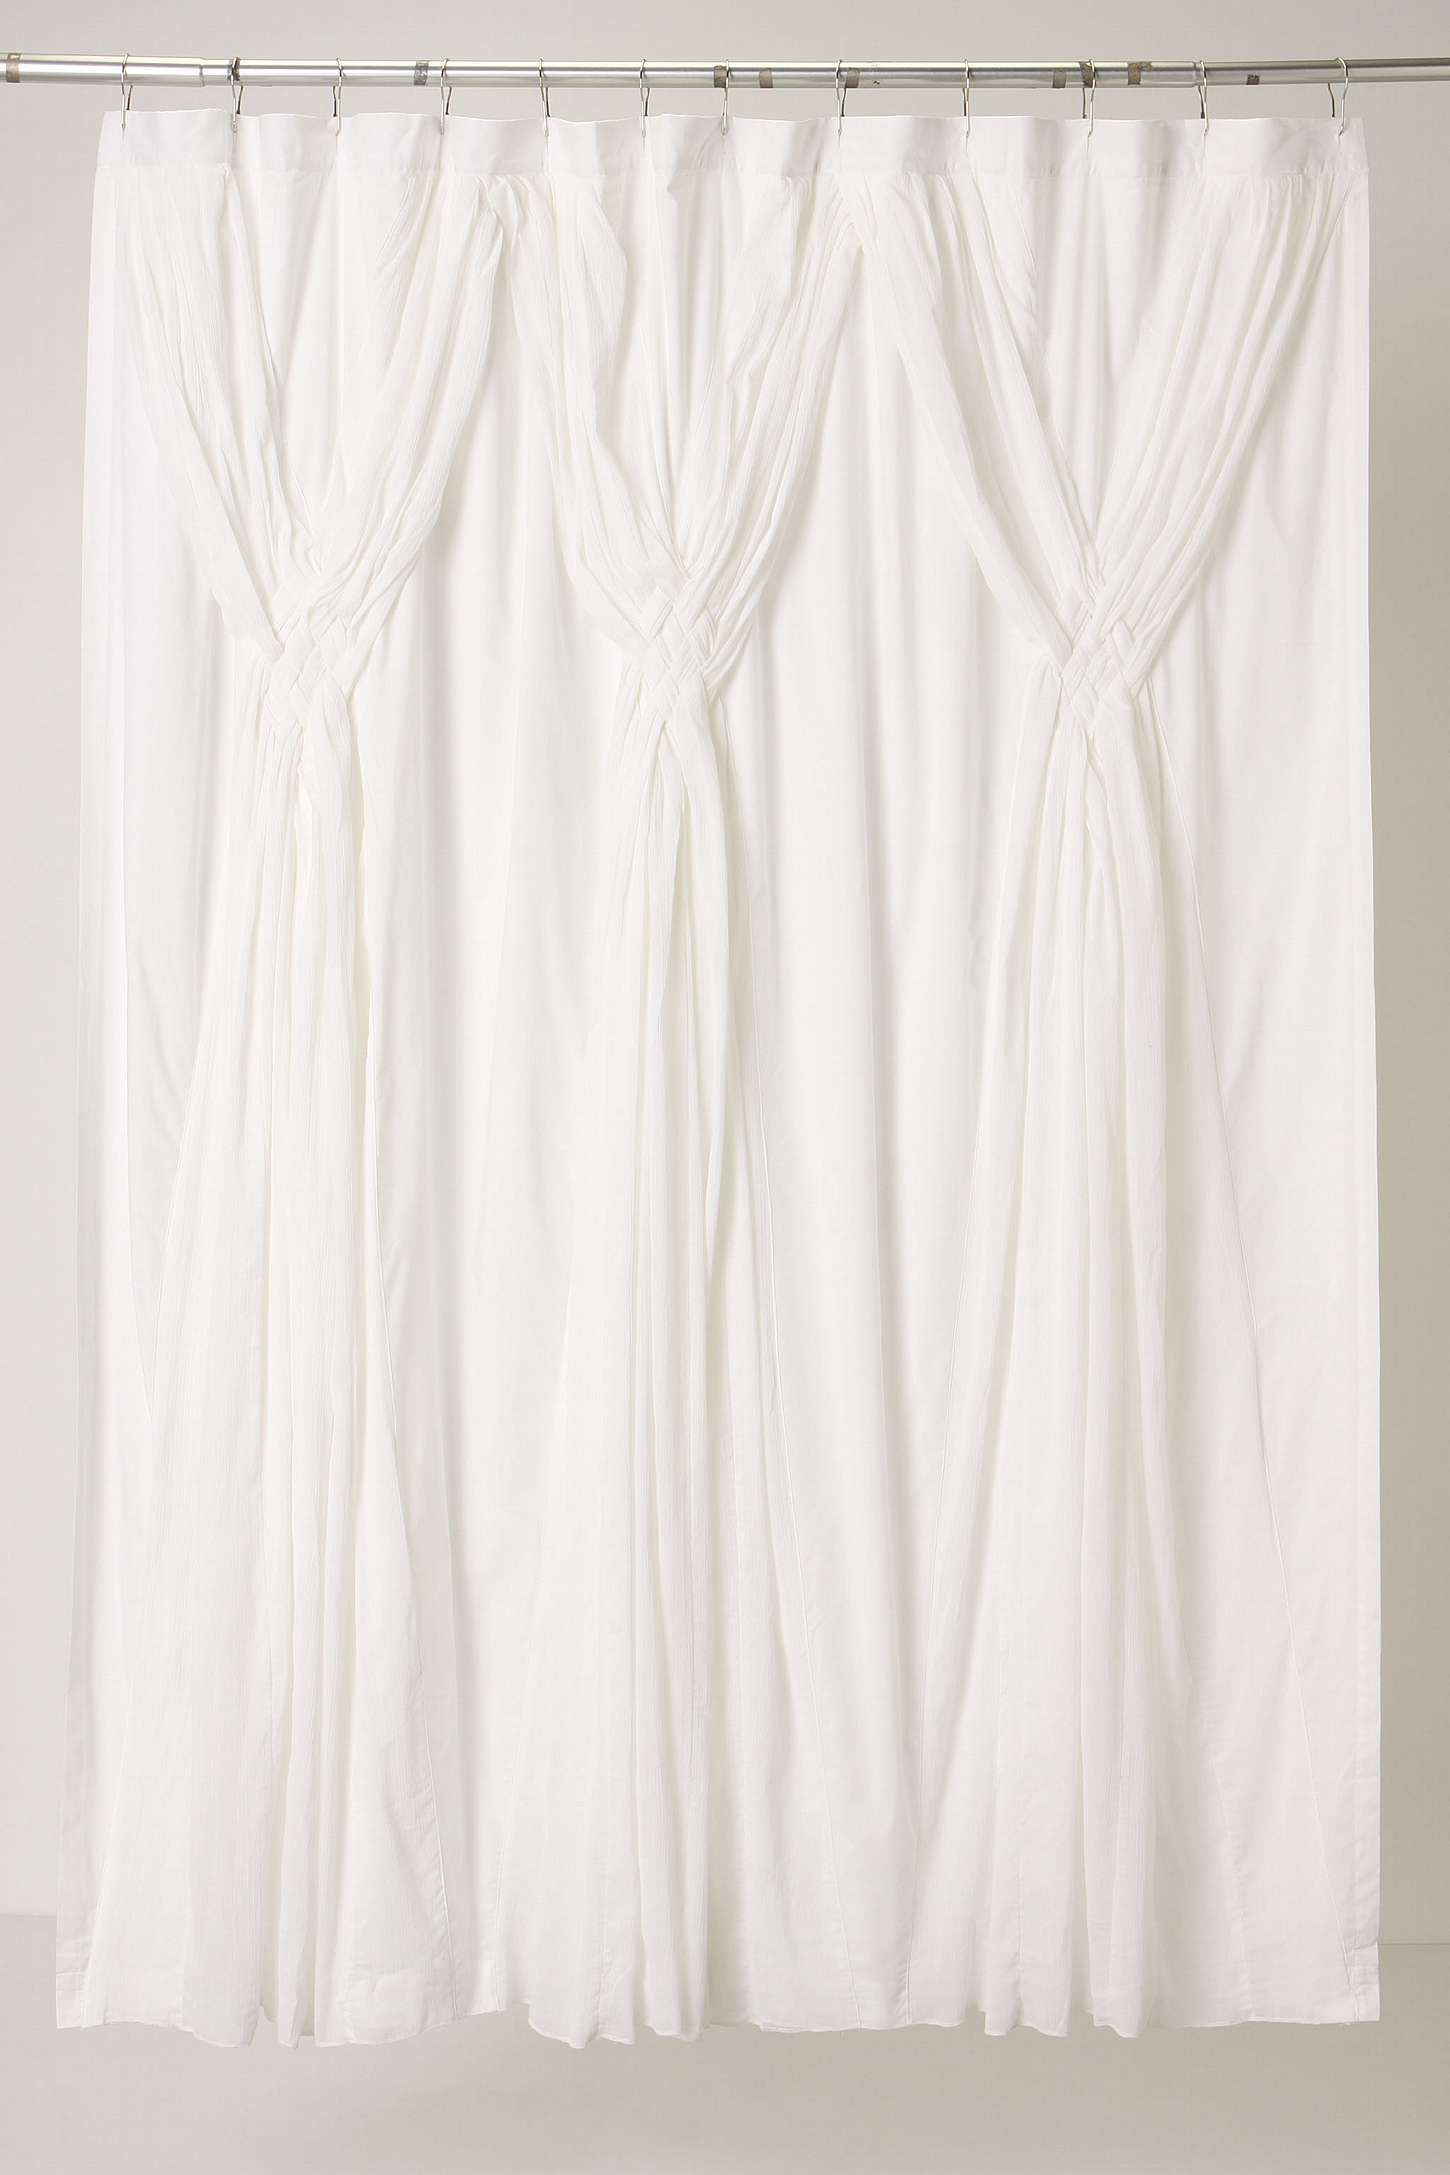 Knotted Vines Shower Curtain A Touch Of Elegance For The Bath